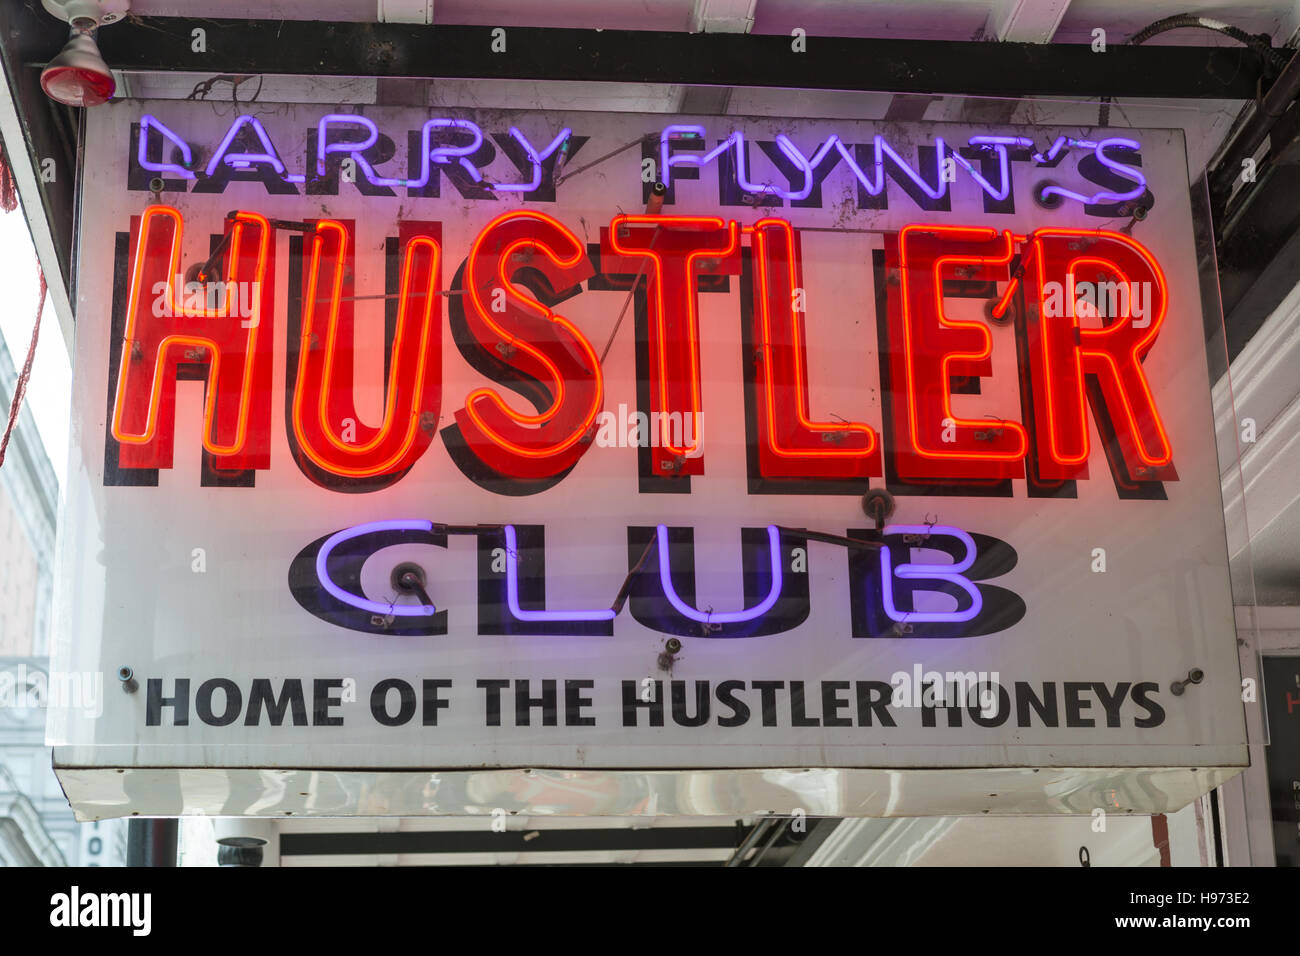 A neon sign outside Larry Flynt's Hustler Club on Bourbon Street in the French Quarter of New Orleans, Louisiana. - Stock Image